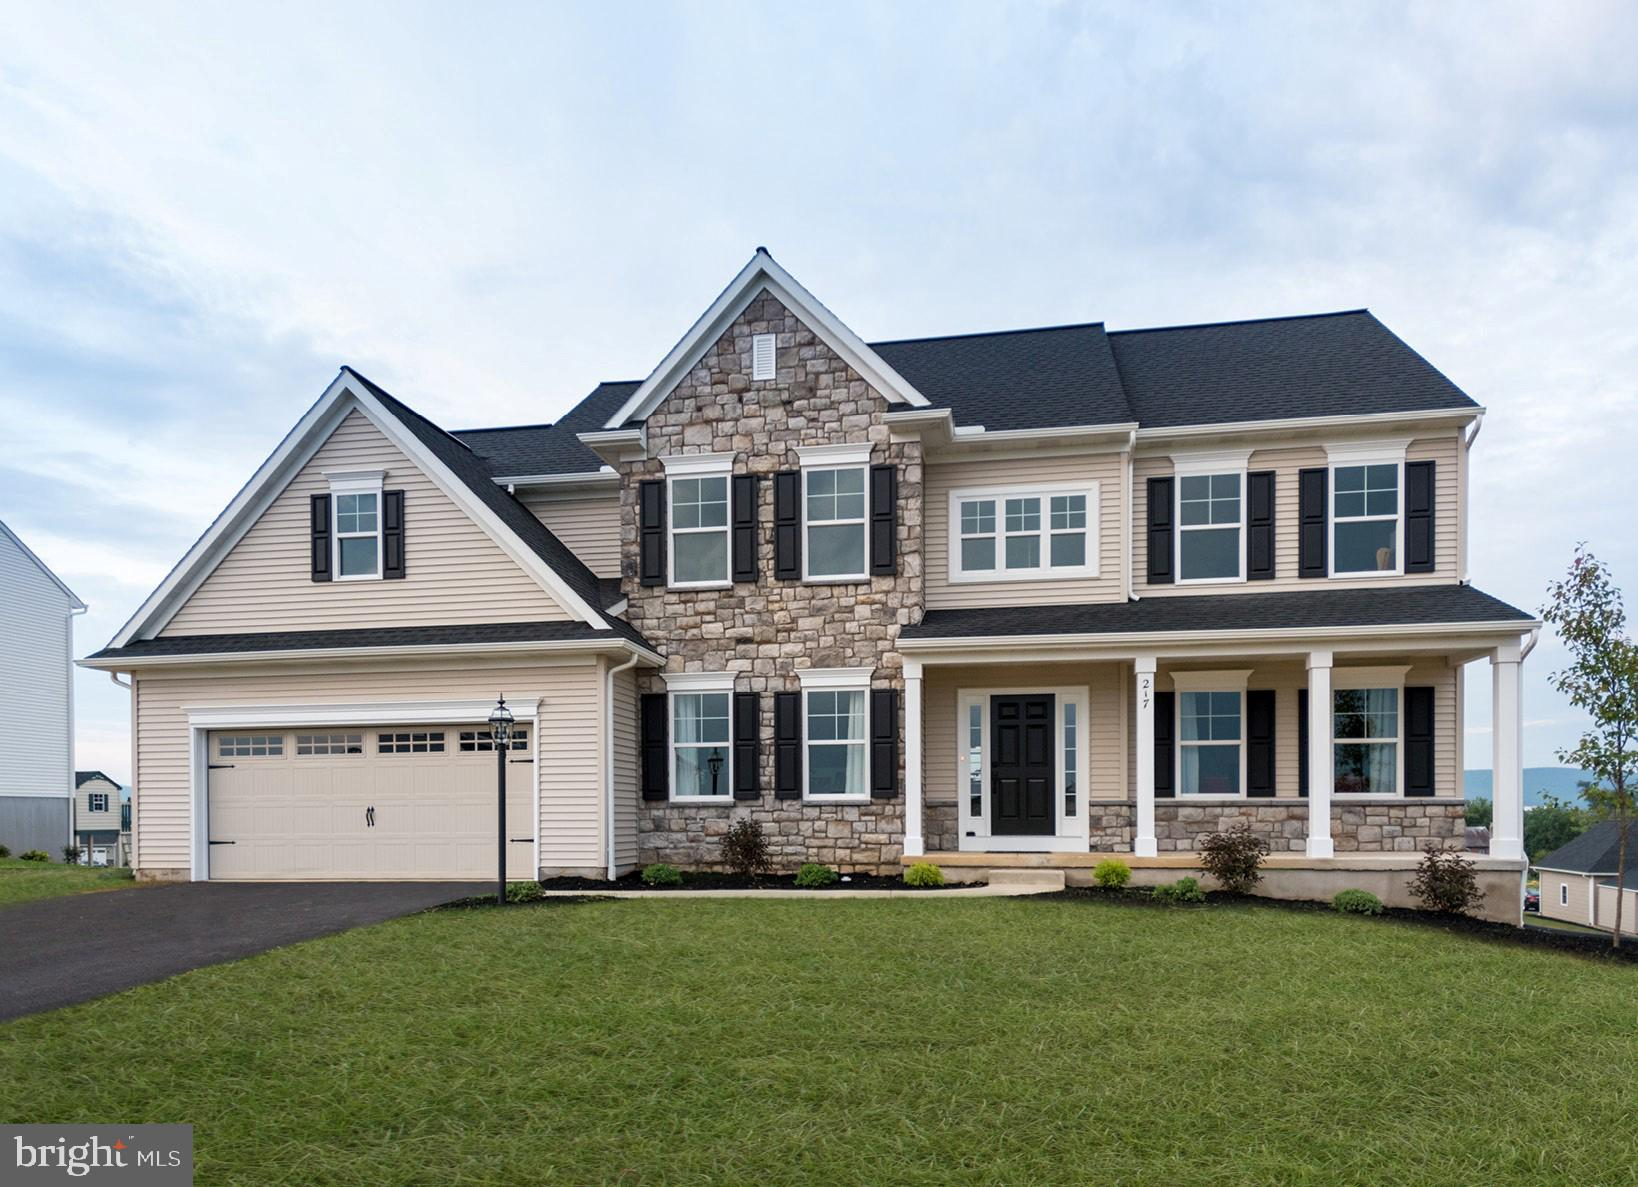 217 IRON WORKS WAY, BOILING SPRINGS, PA 17007